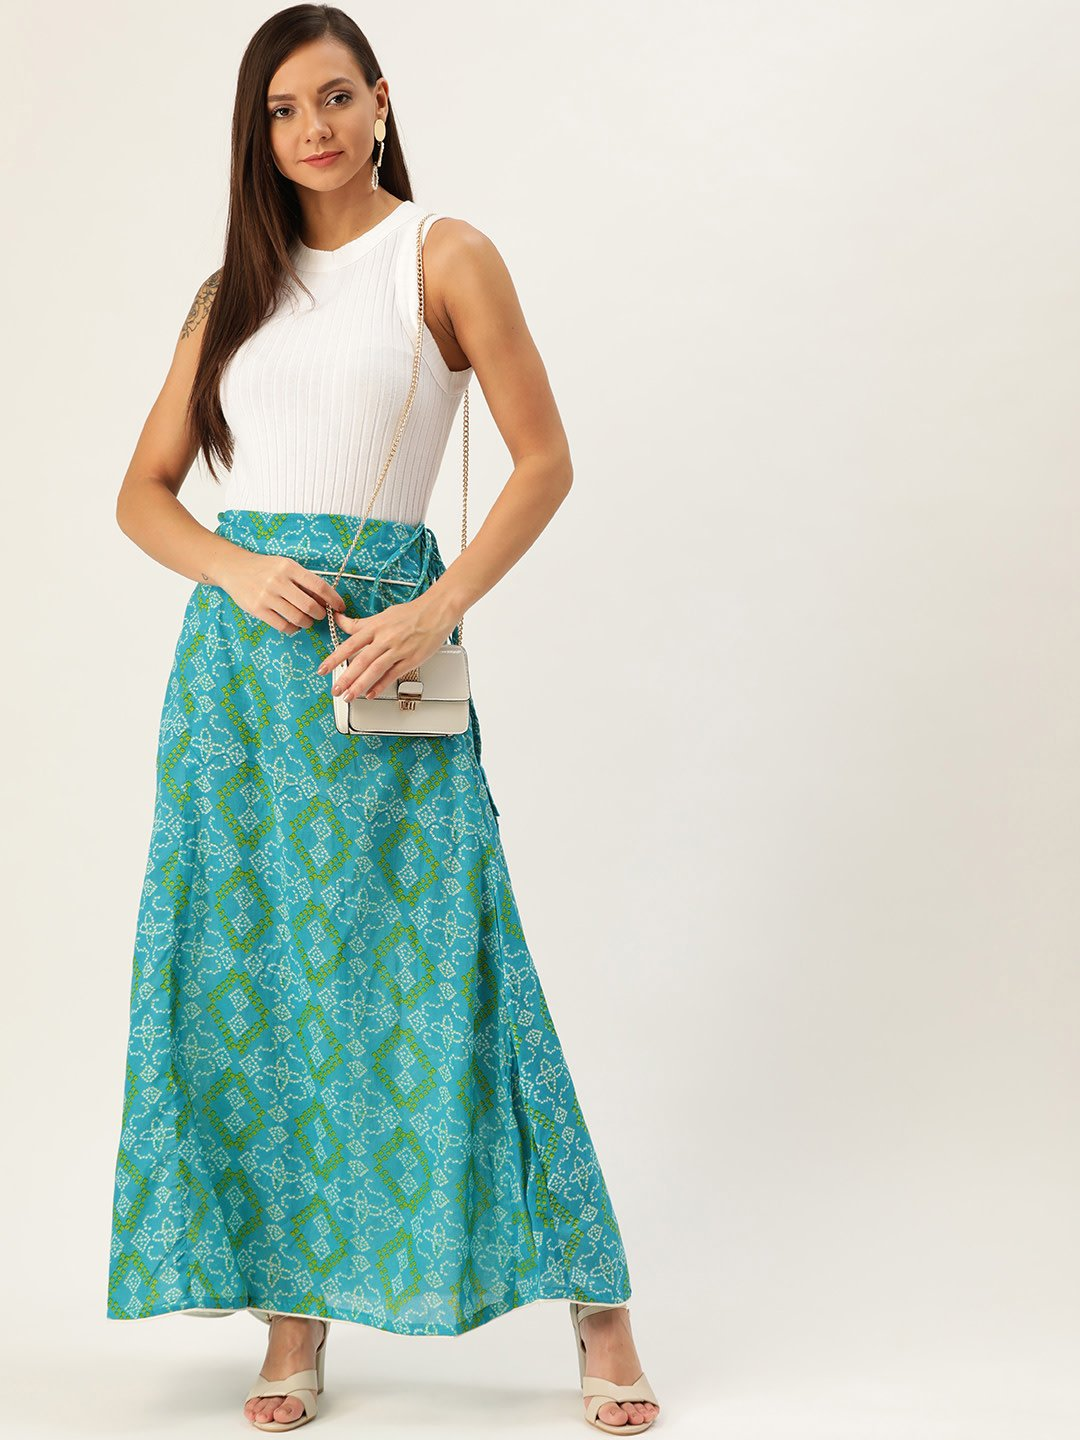 BLUE BANDHINI SKIRT